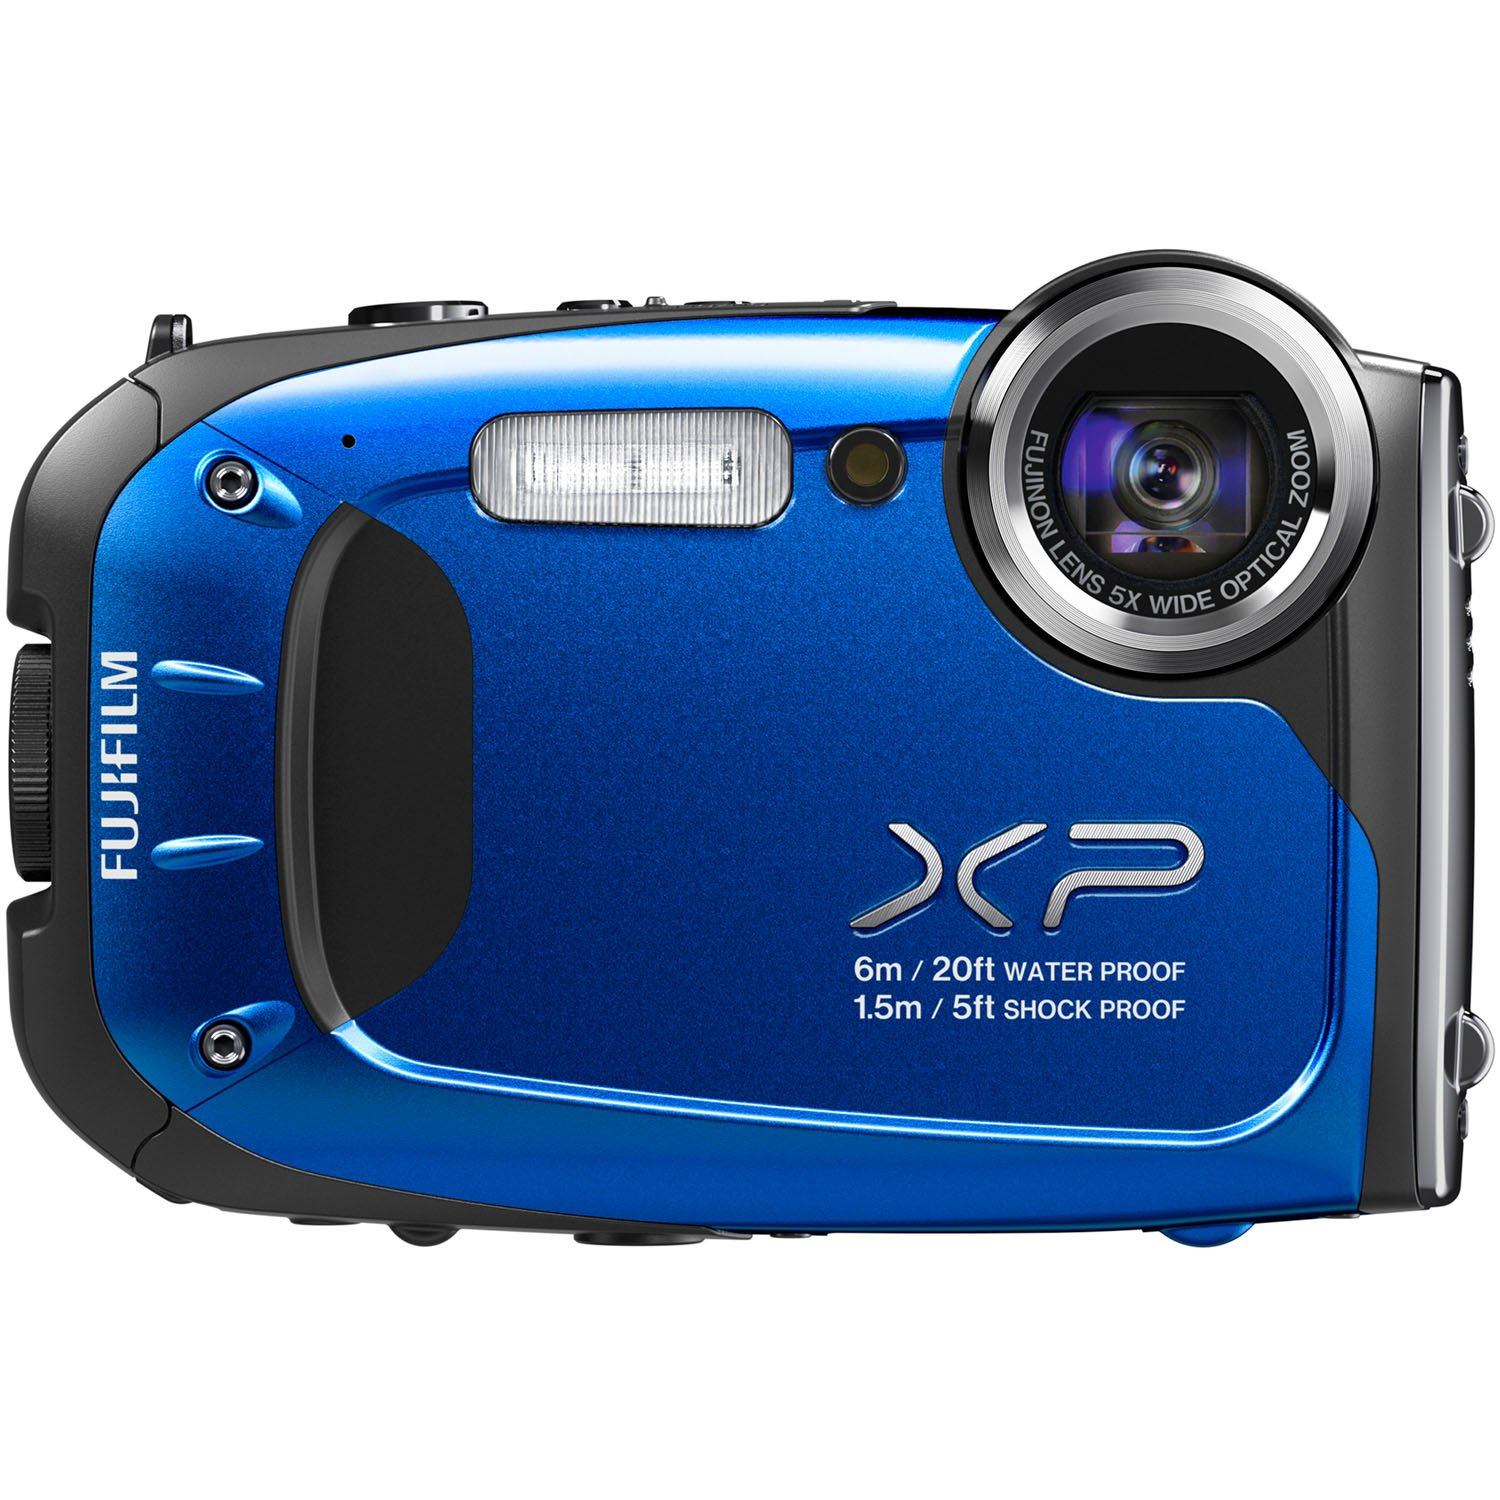 Fujifilm FinePix XP60 16.4MP Digital Camera with 2.7-Inch LCD (Blue) (Discontinued by Manufacturer) by Fujifilm (Image #6)